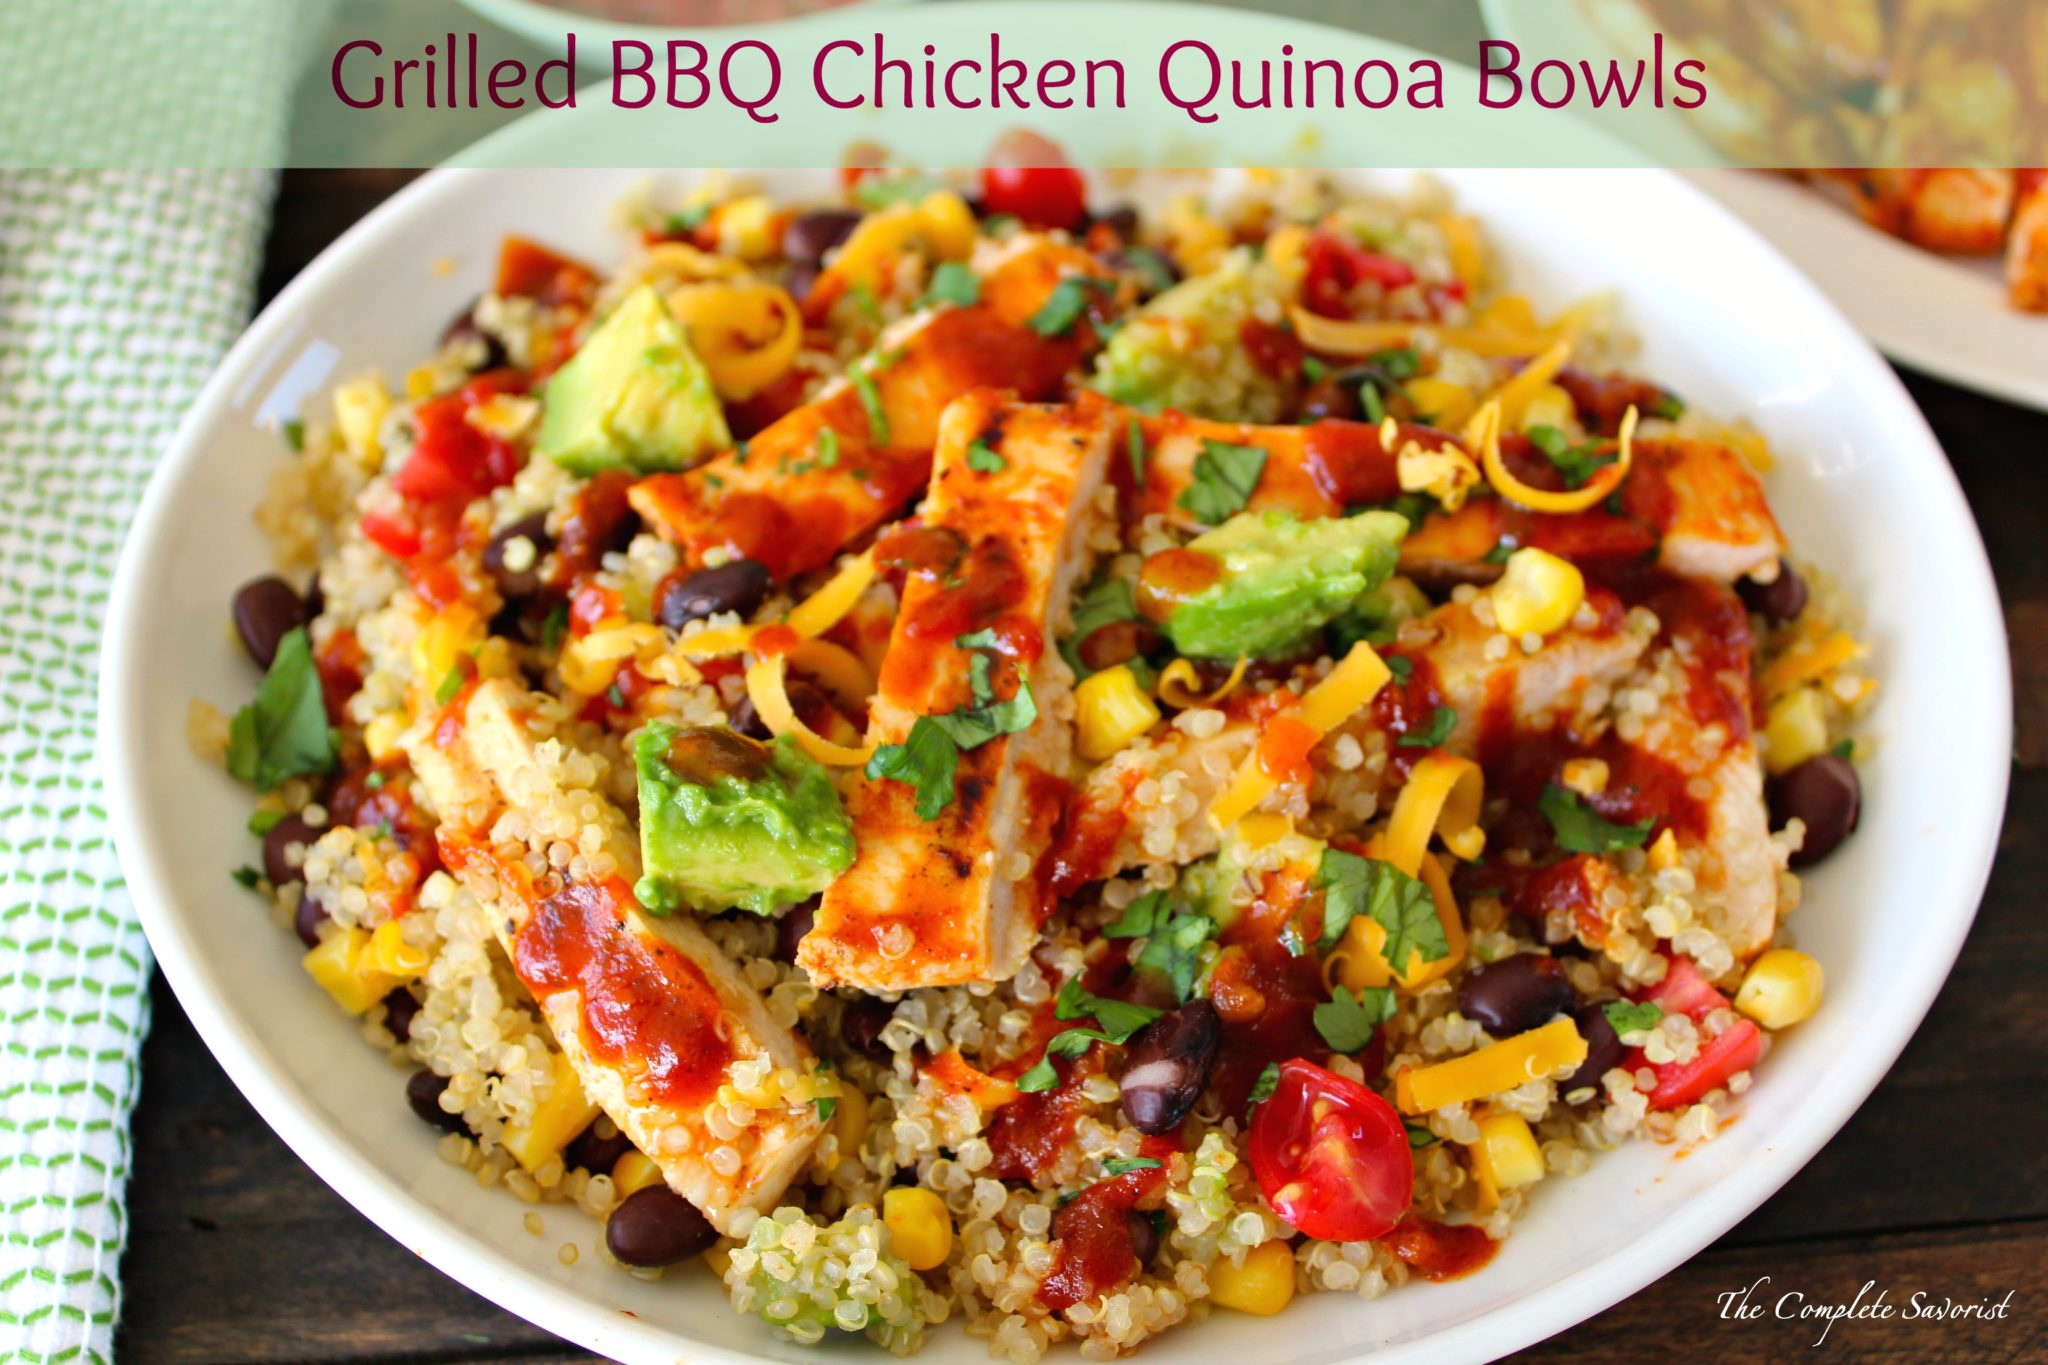 Grilled bbq chicken quinoa bowls 2a